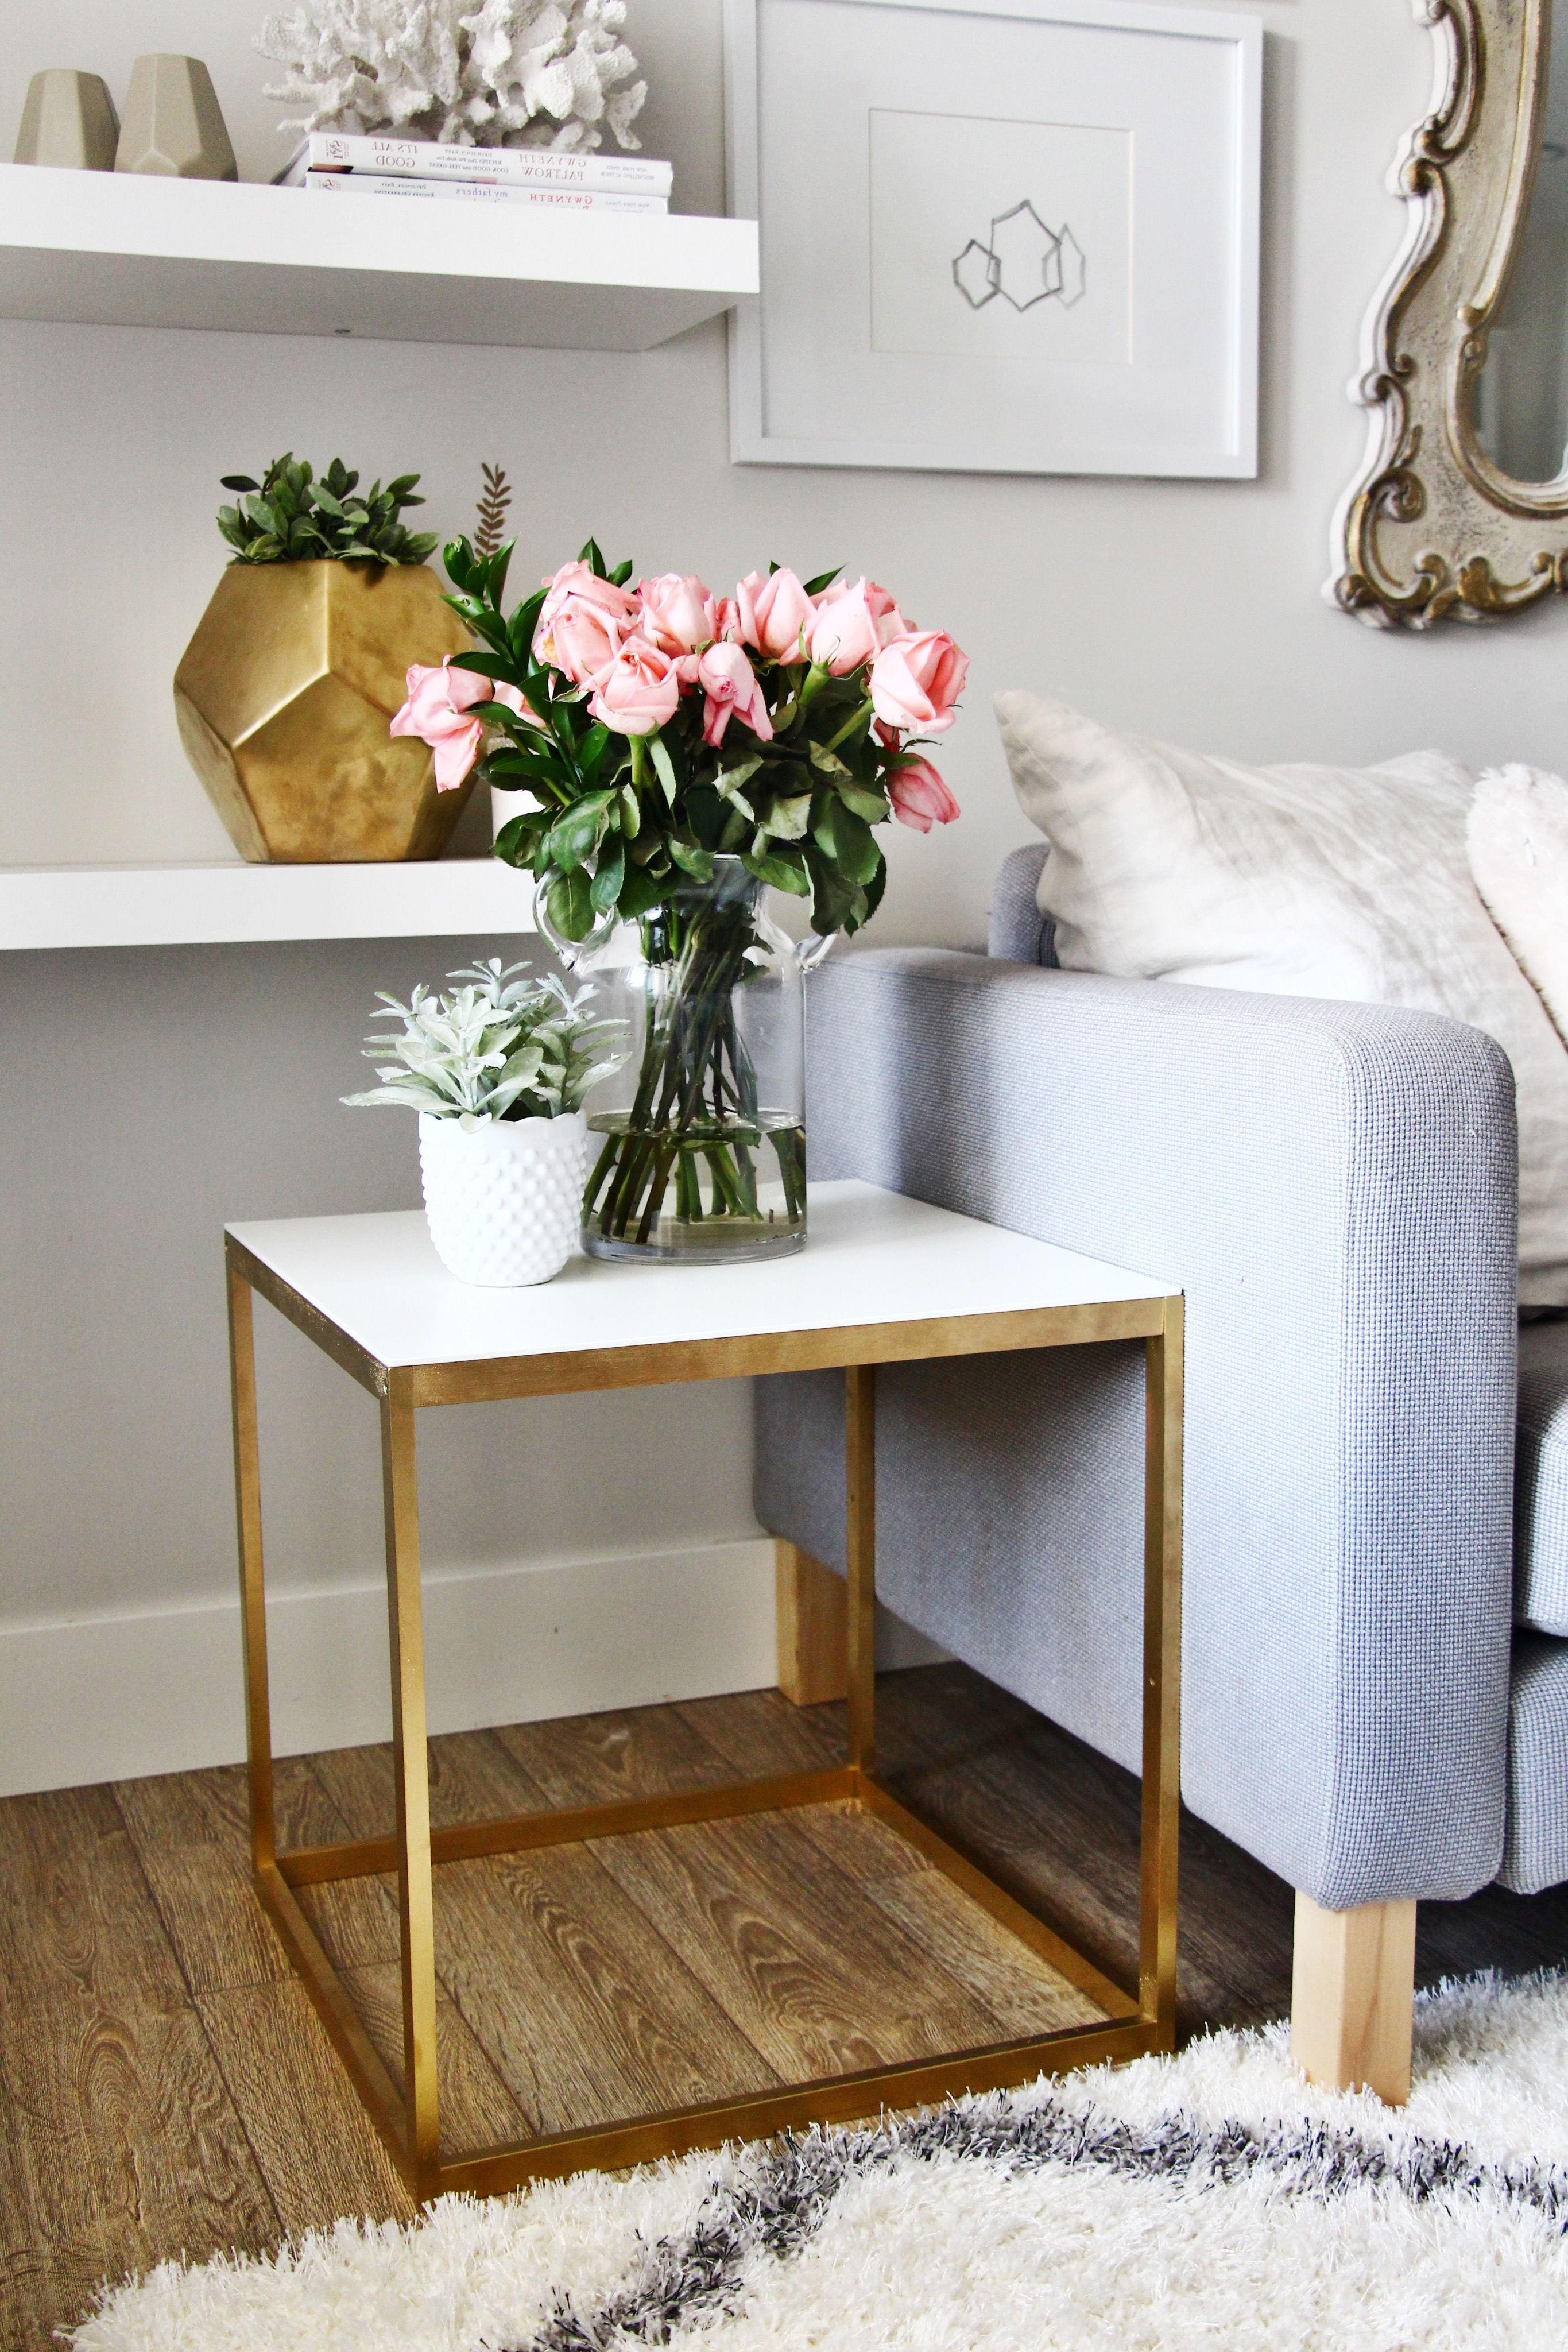 Pinterest Regarding Round White Wash Brass Painted Coffee Tables (View 13 of 20)